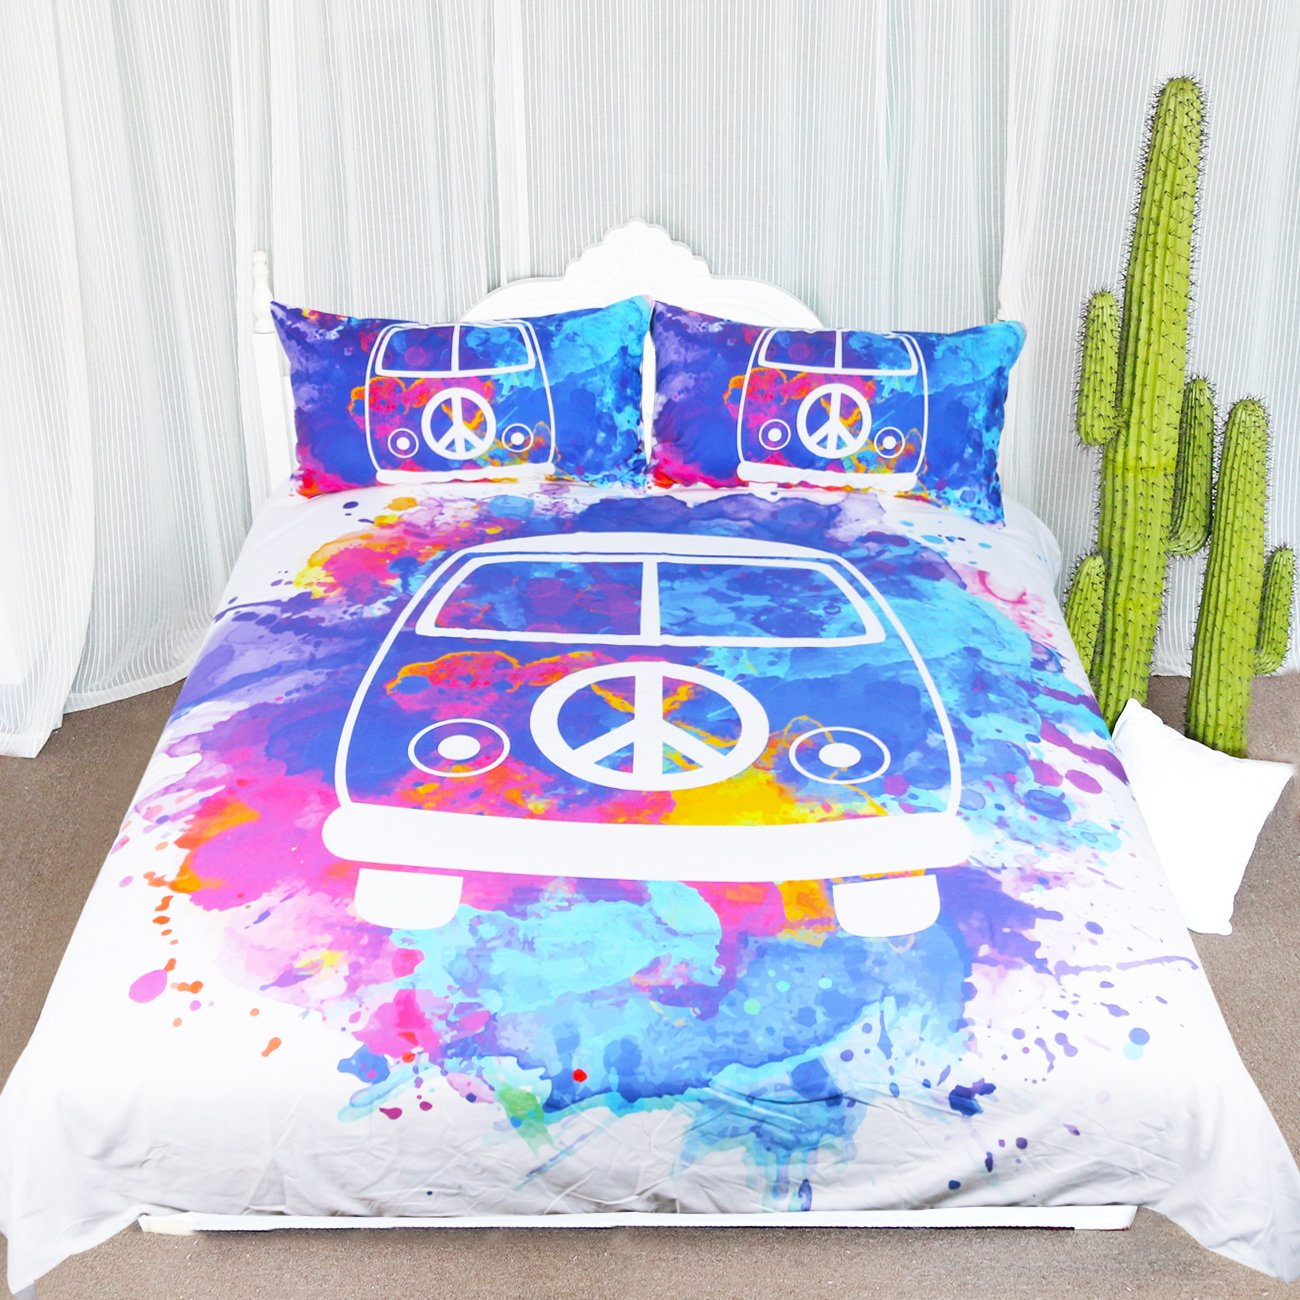 ARIGHTEX Hippie Bus Bedding Purple Blue Watercolor Paint Boho Duvet Cover Psychedelic Love Bedding Sets Teen Bedspreads (Queen)